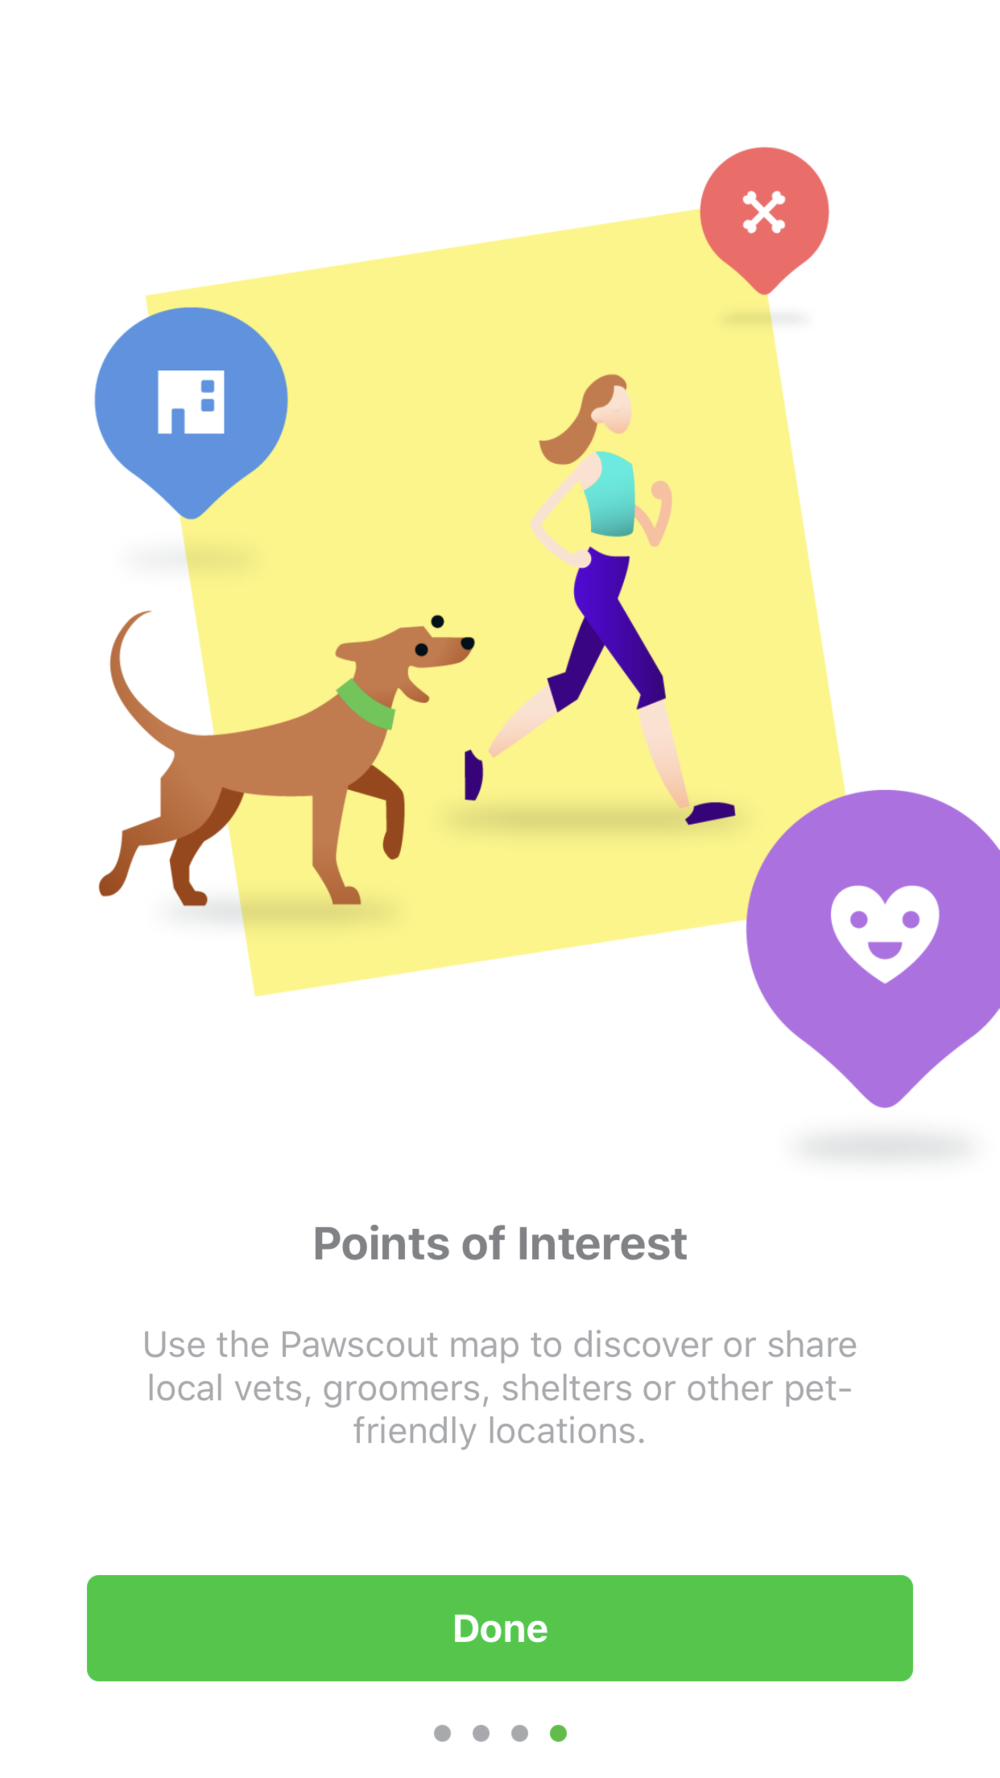 GPS/FITBIT: Not only does the app track the location/how far your pet has played/walked outside, but you can track the time and even use the map the discover local points of Interest like pet friendly places, parks and local vets!